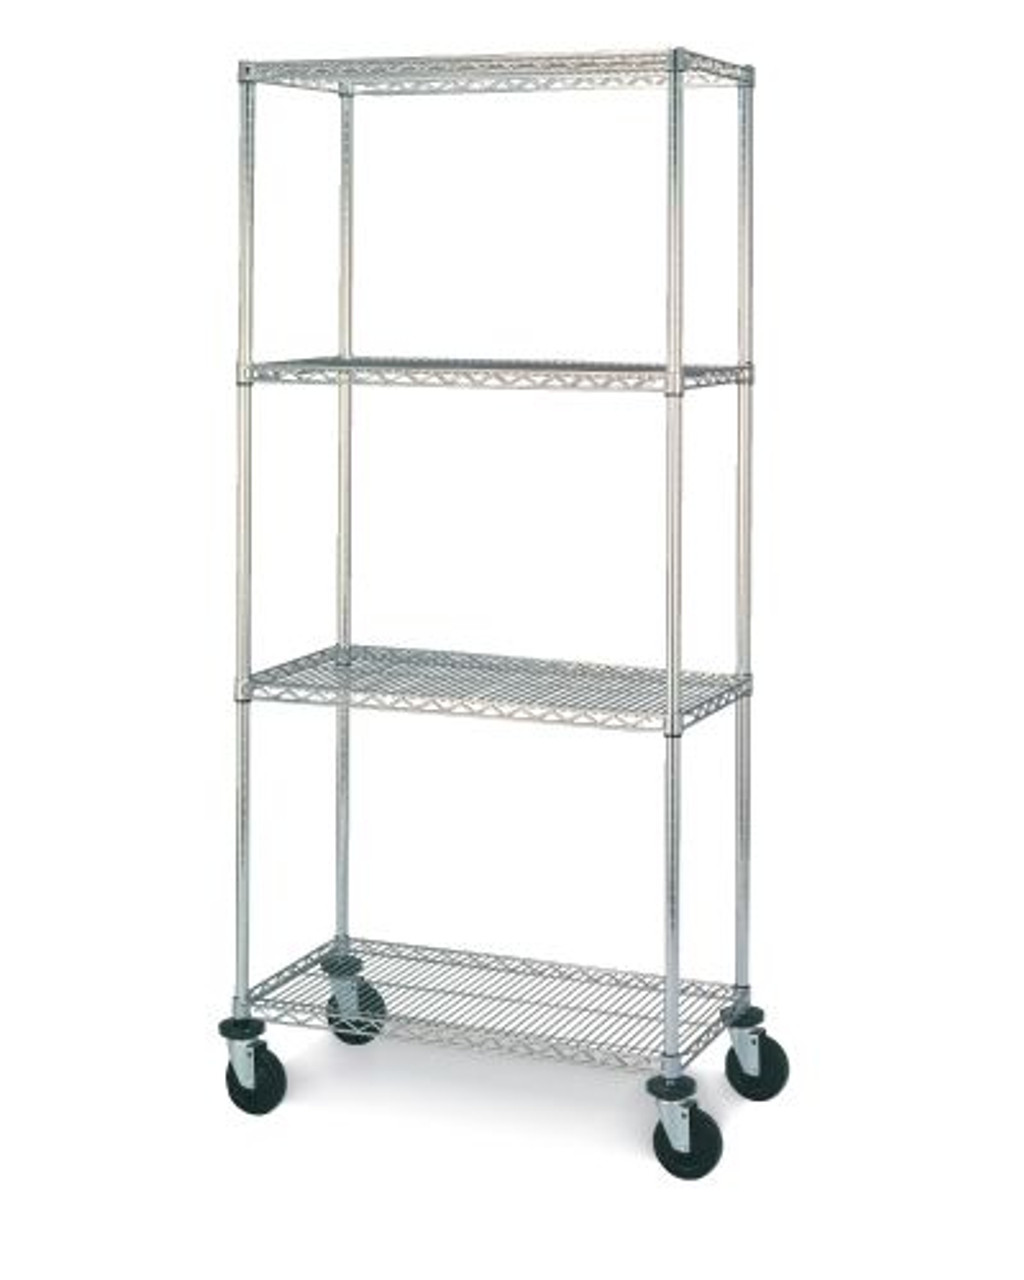 "Olympic 24"" Deep 4 Shelf Mobile Carts - Chrome - 24"" x 30"" x 68"" MJ2430-63UC"